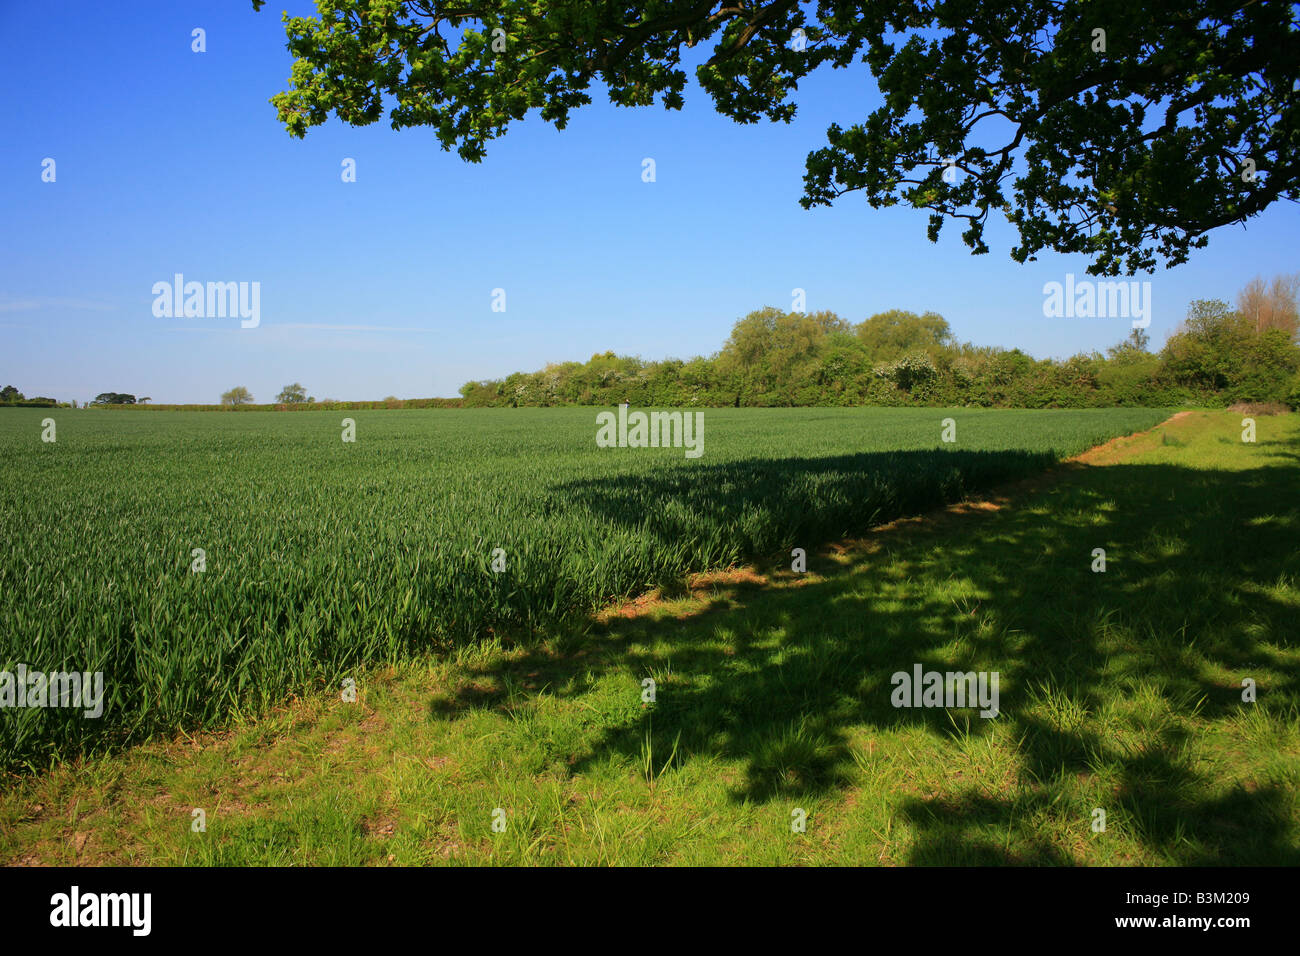 Kentish field in early summer with lower branches of oak tree and it's shaddow, Brabourne Lees, Ashford, Kent, England, Stock Photo